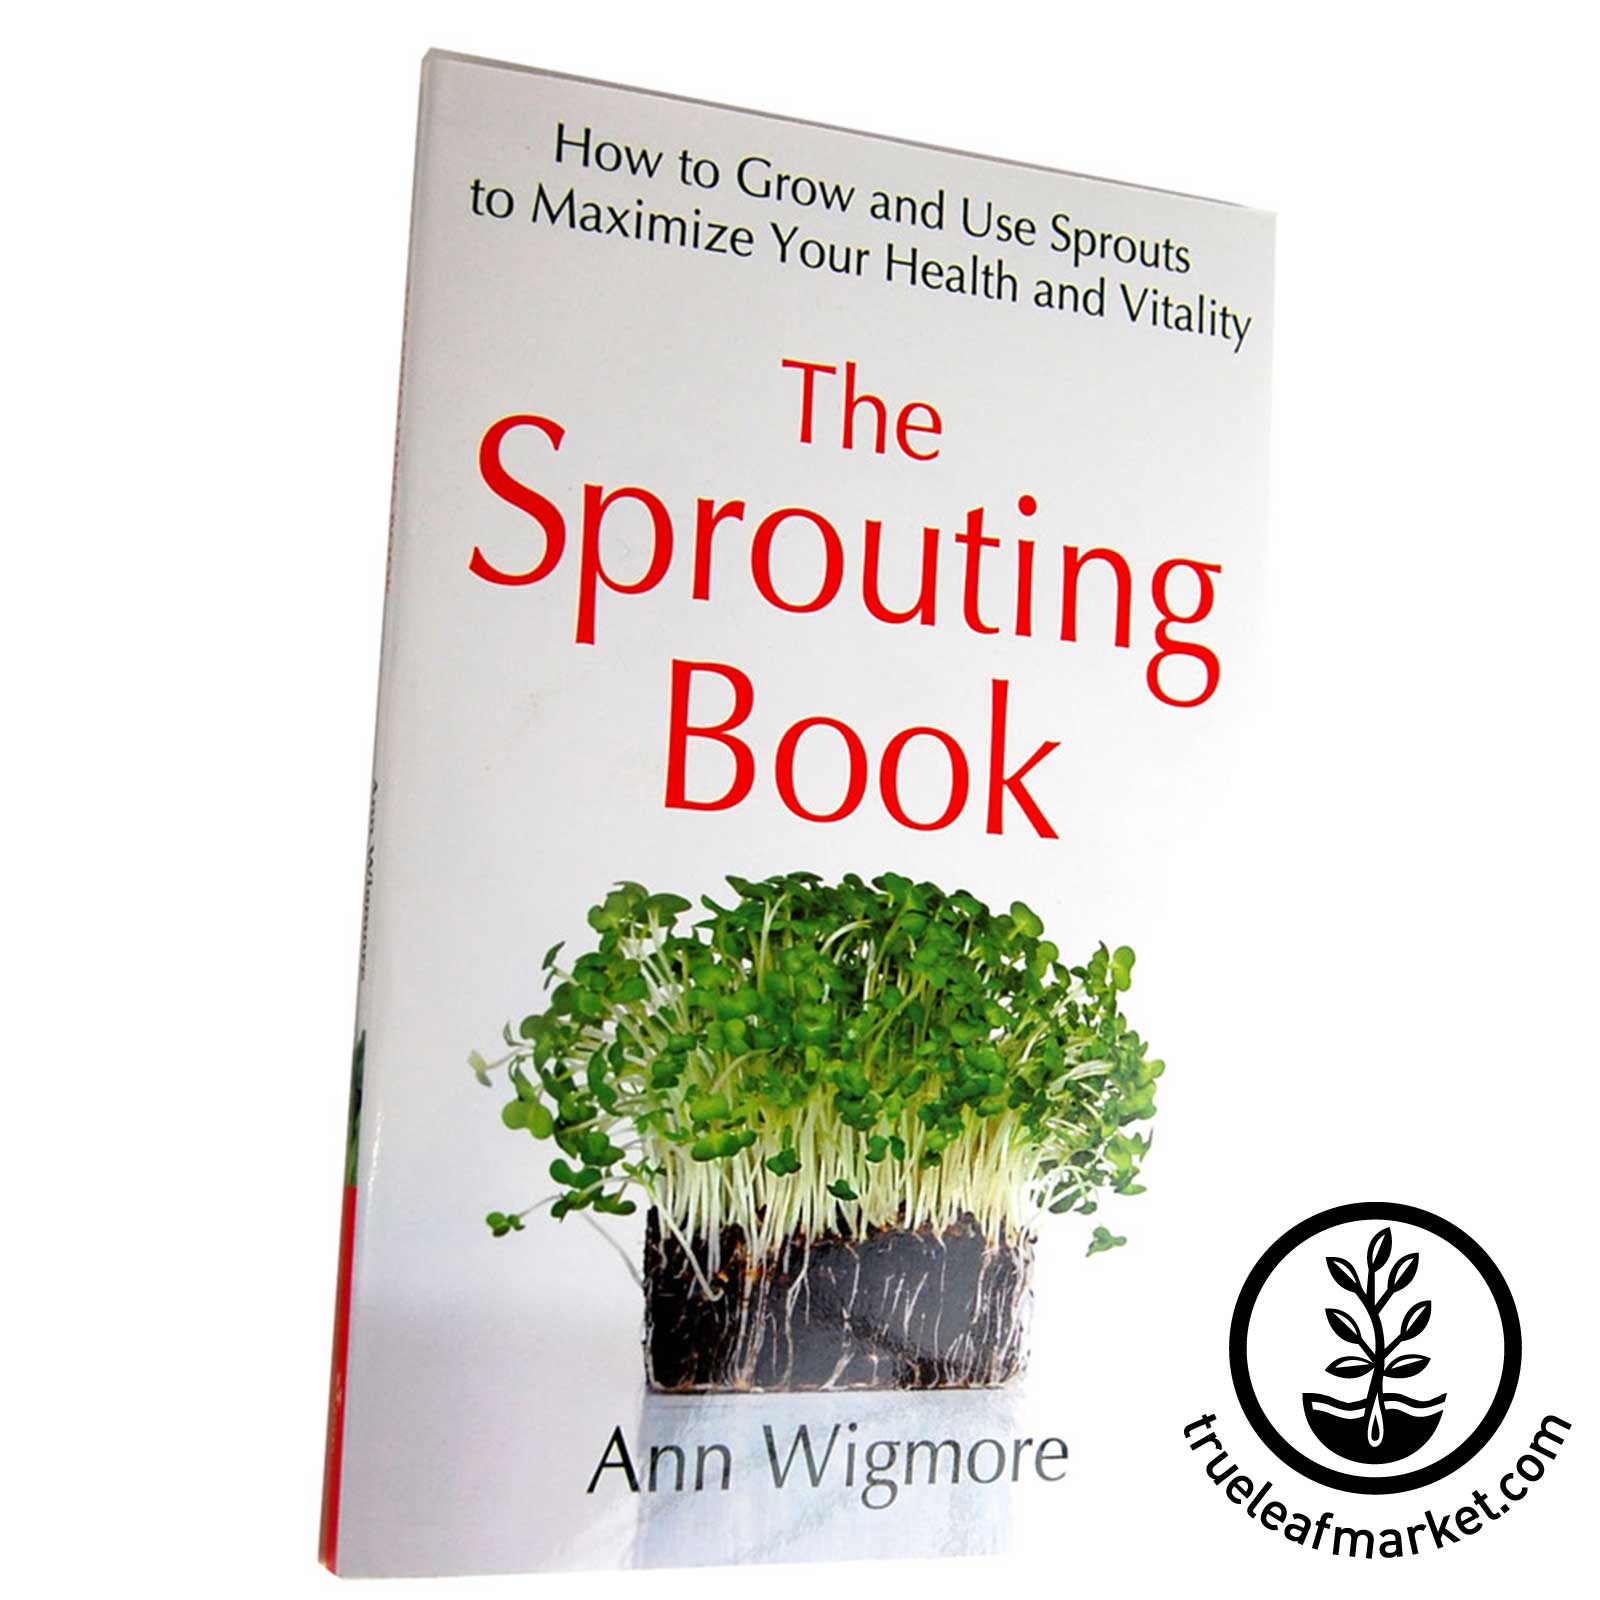 The Sprouting Book by Ann Wigmore